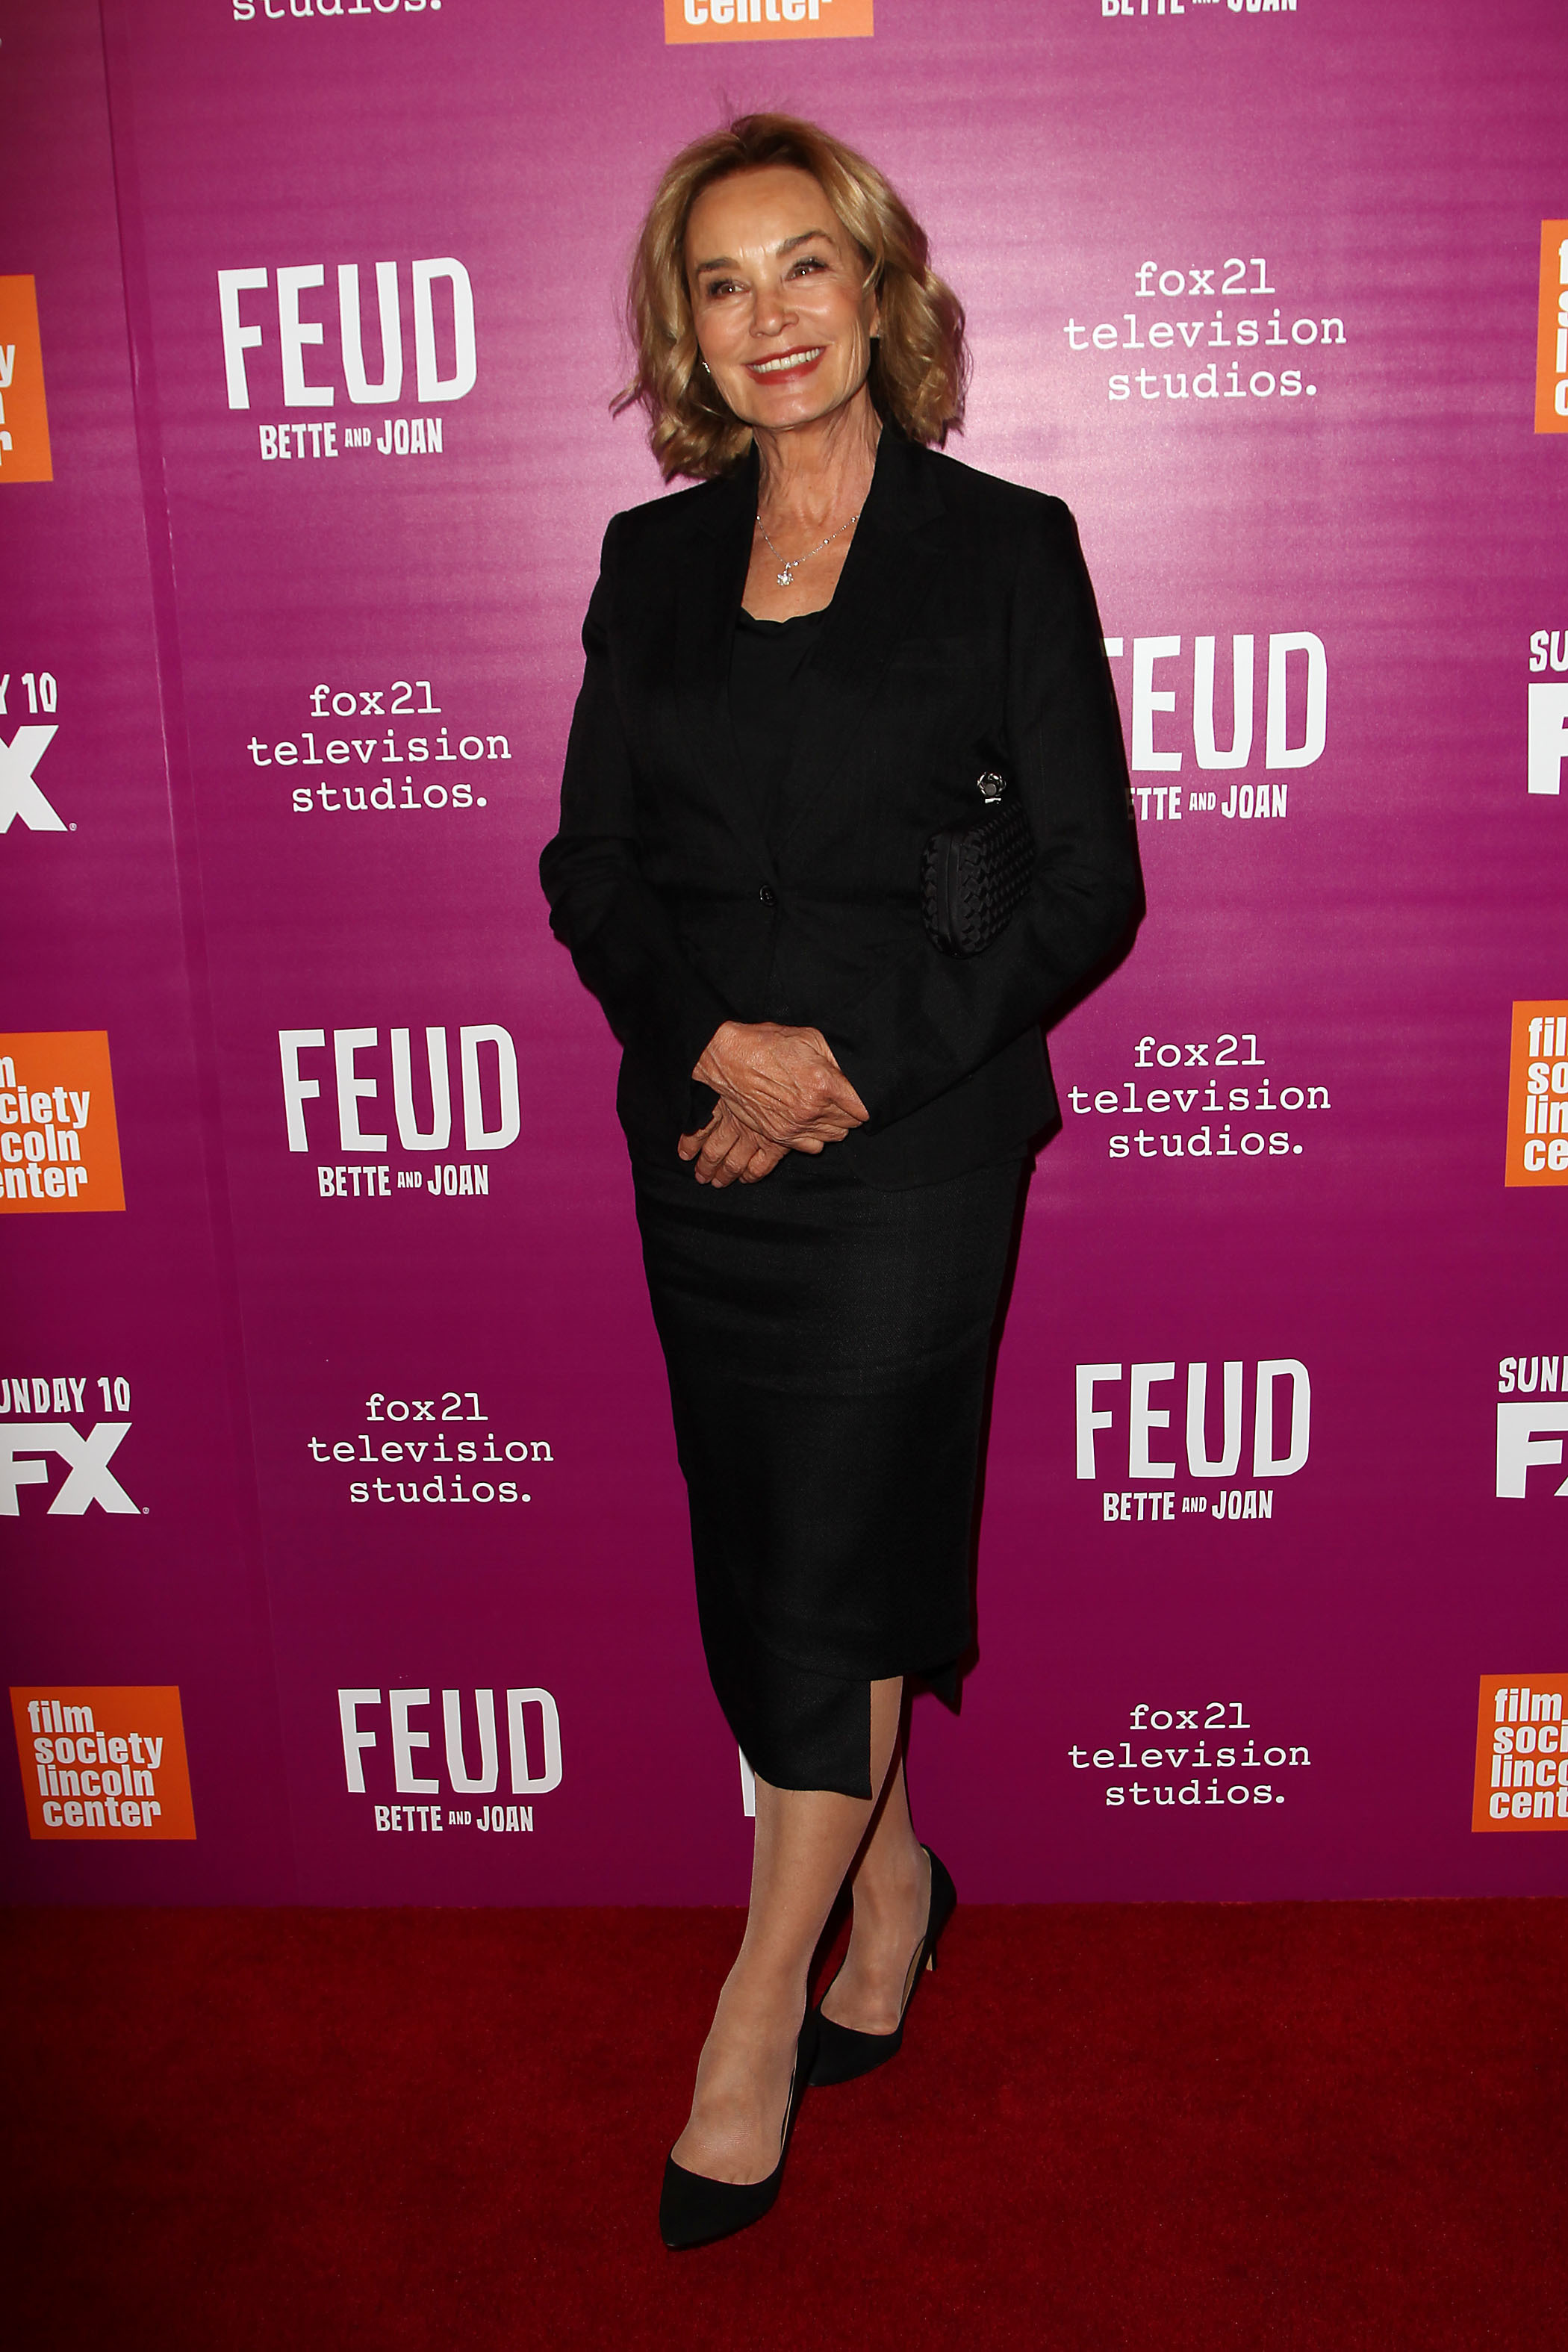 """Jessica Lange attends the """"Feud: Bette and Joan"""" red carpet event in New York on April 18, 2017."""